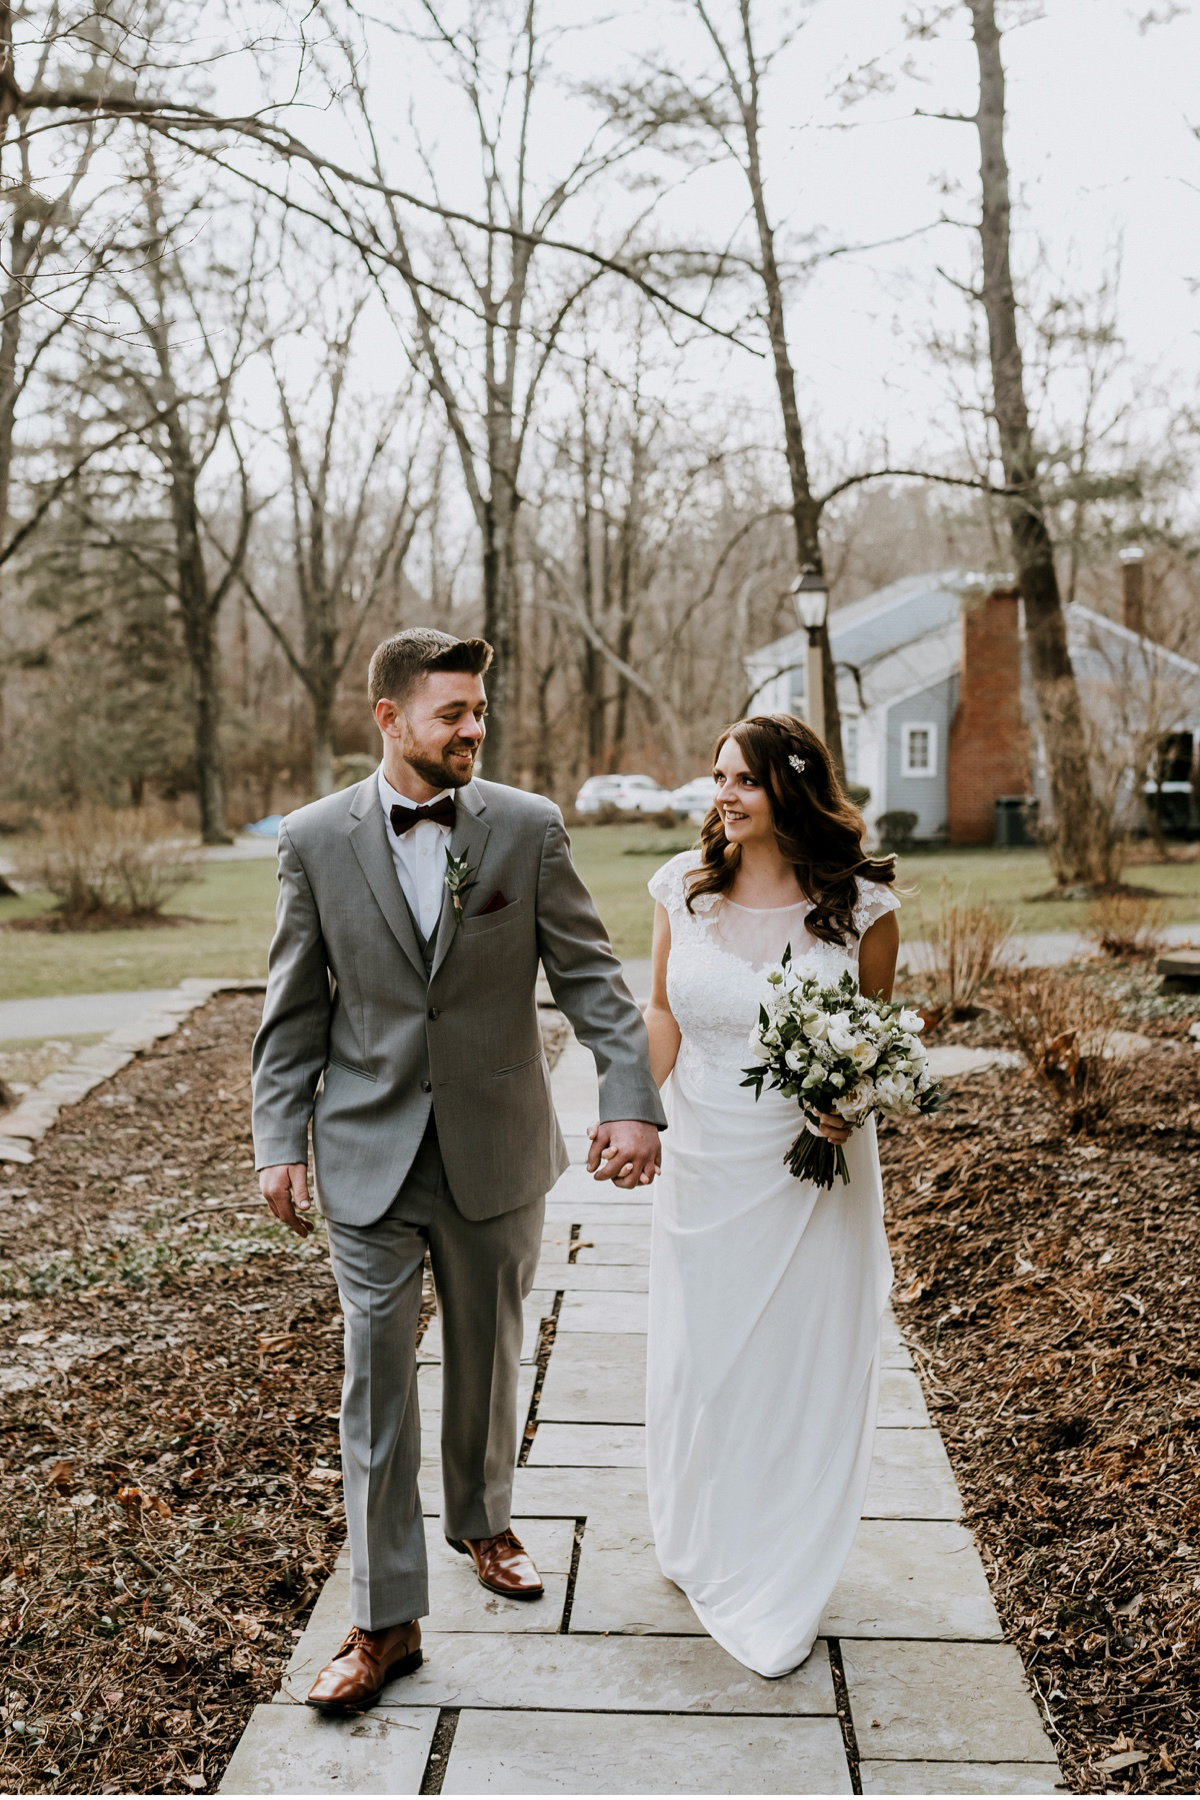 22 Winter Elopement Adventurous Elopement Photographer New Jersey Wedding Photographer Intimate Wedding